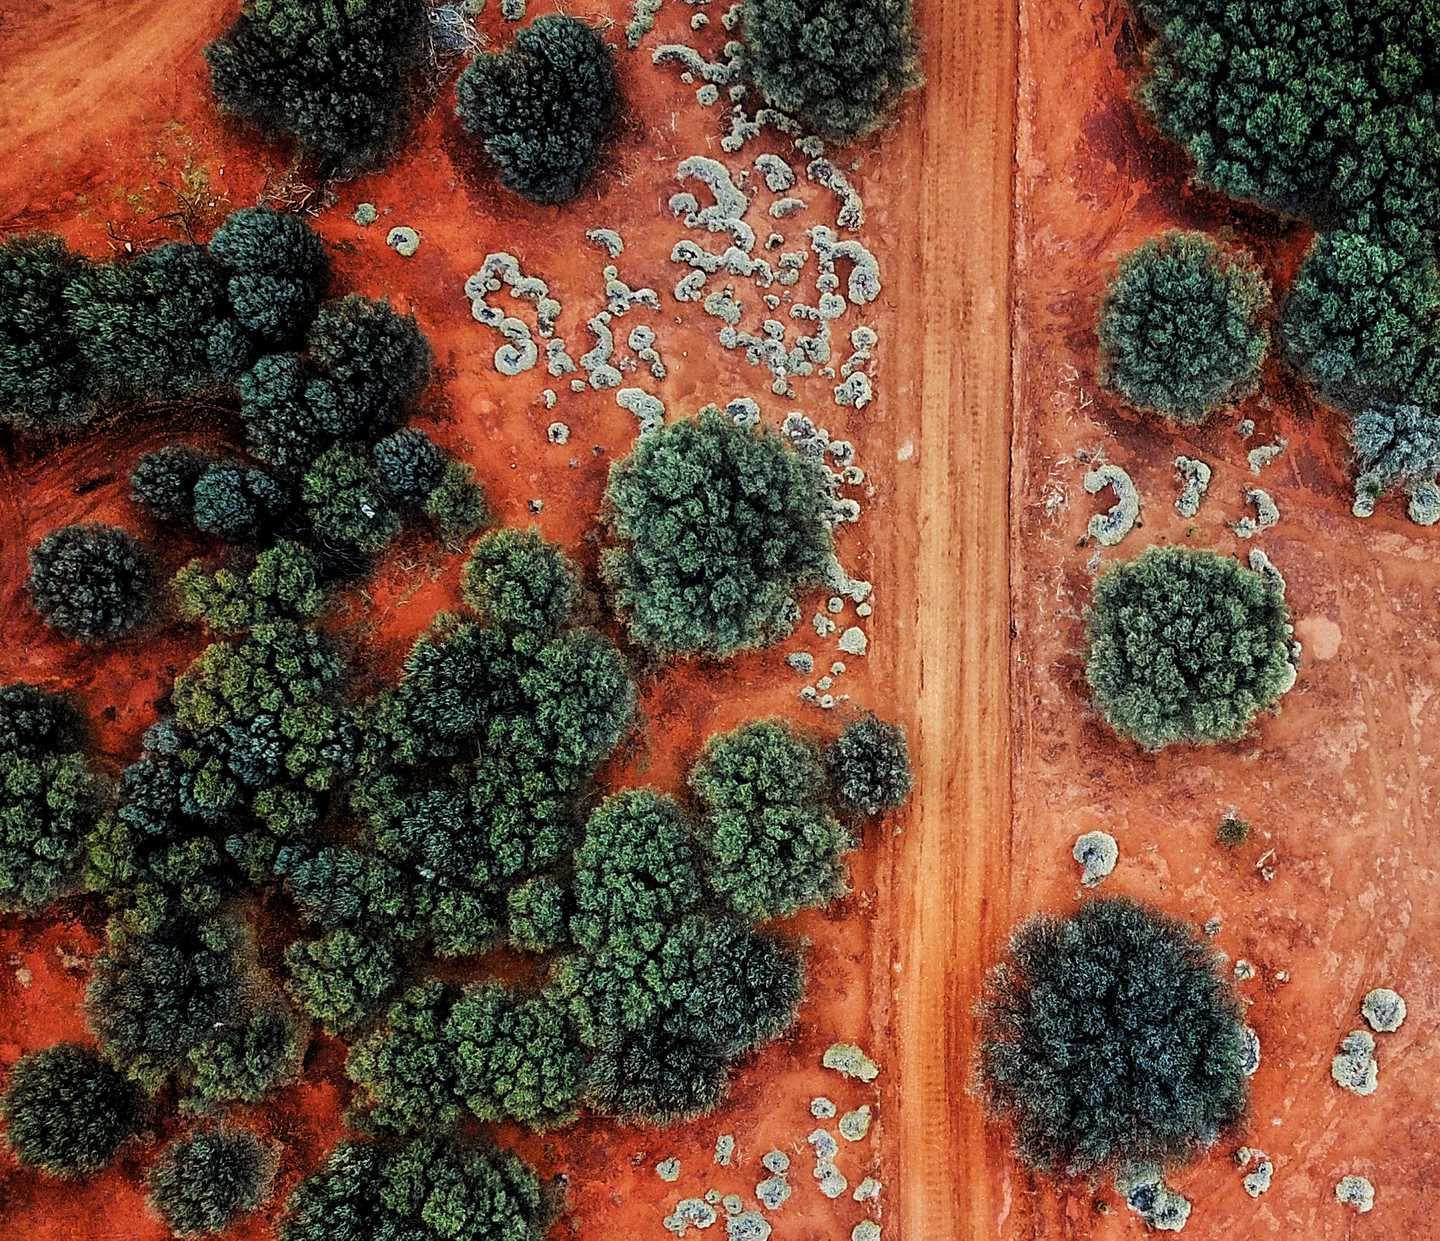 Arial view of arid landscape with dirt and brush